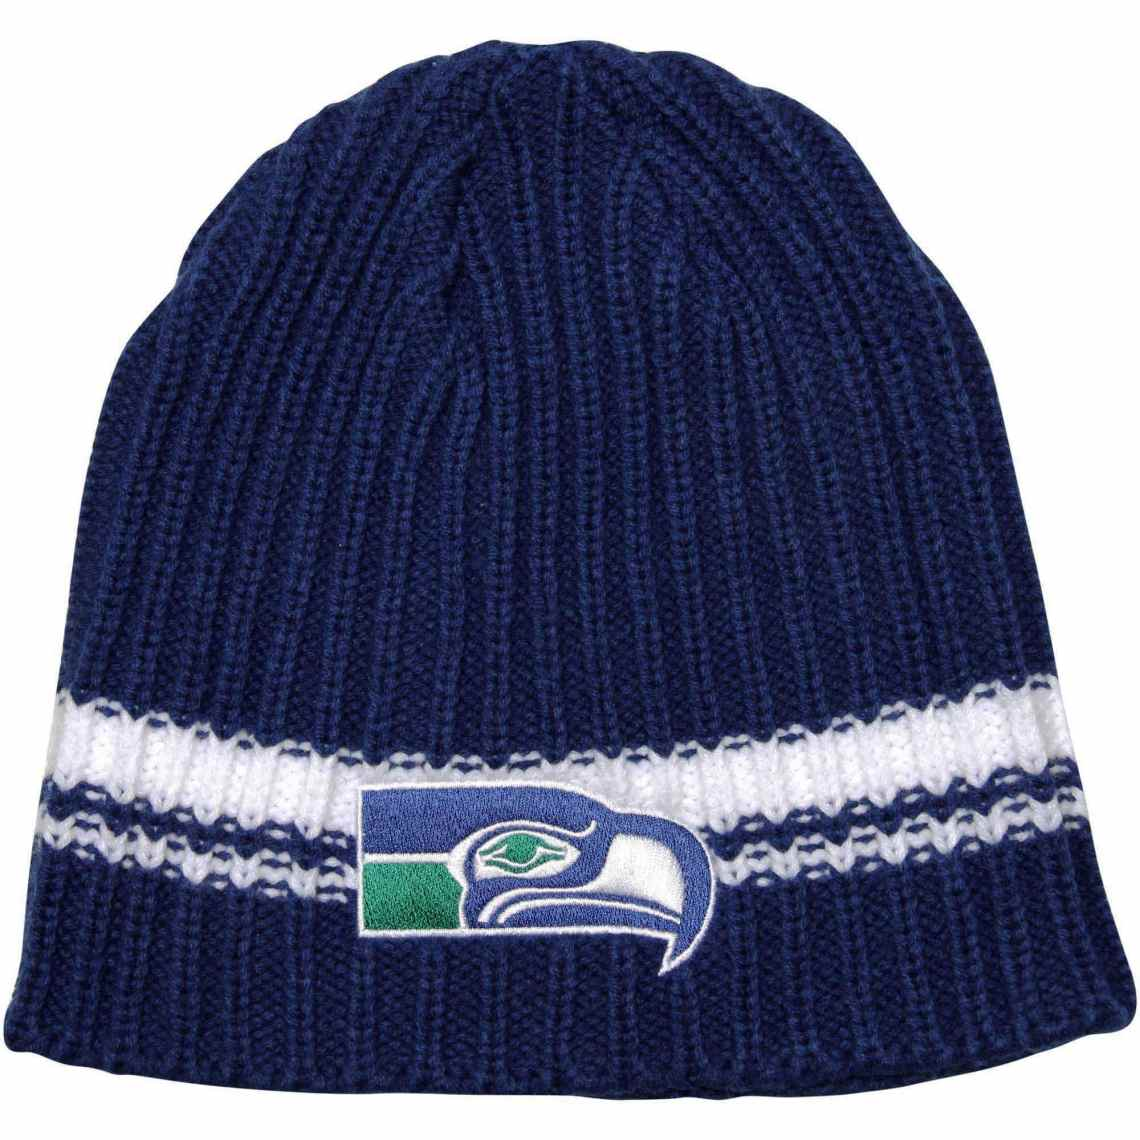 '47 Brand Seattle Seahawks Domestic Ontario Knit Hat - College Navy